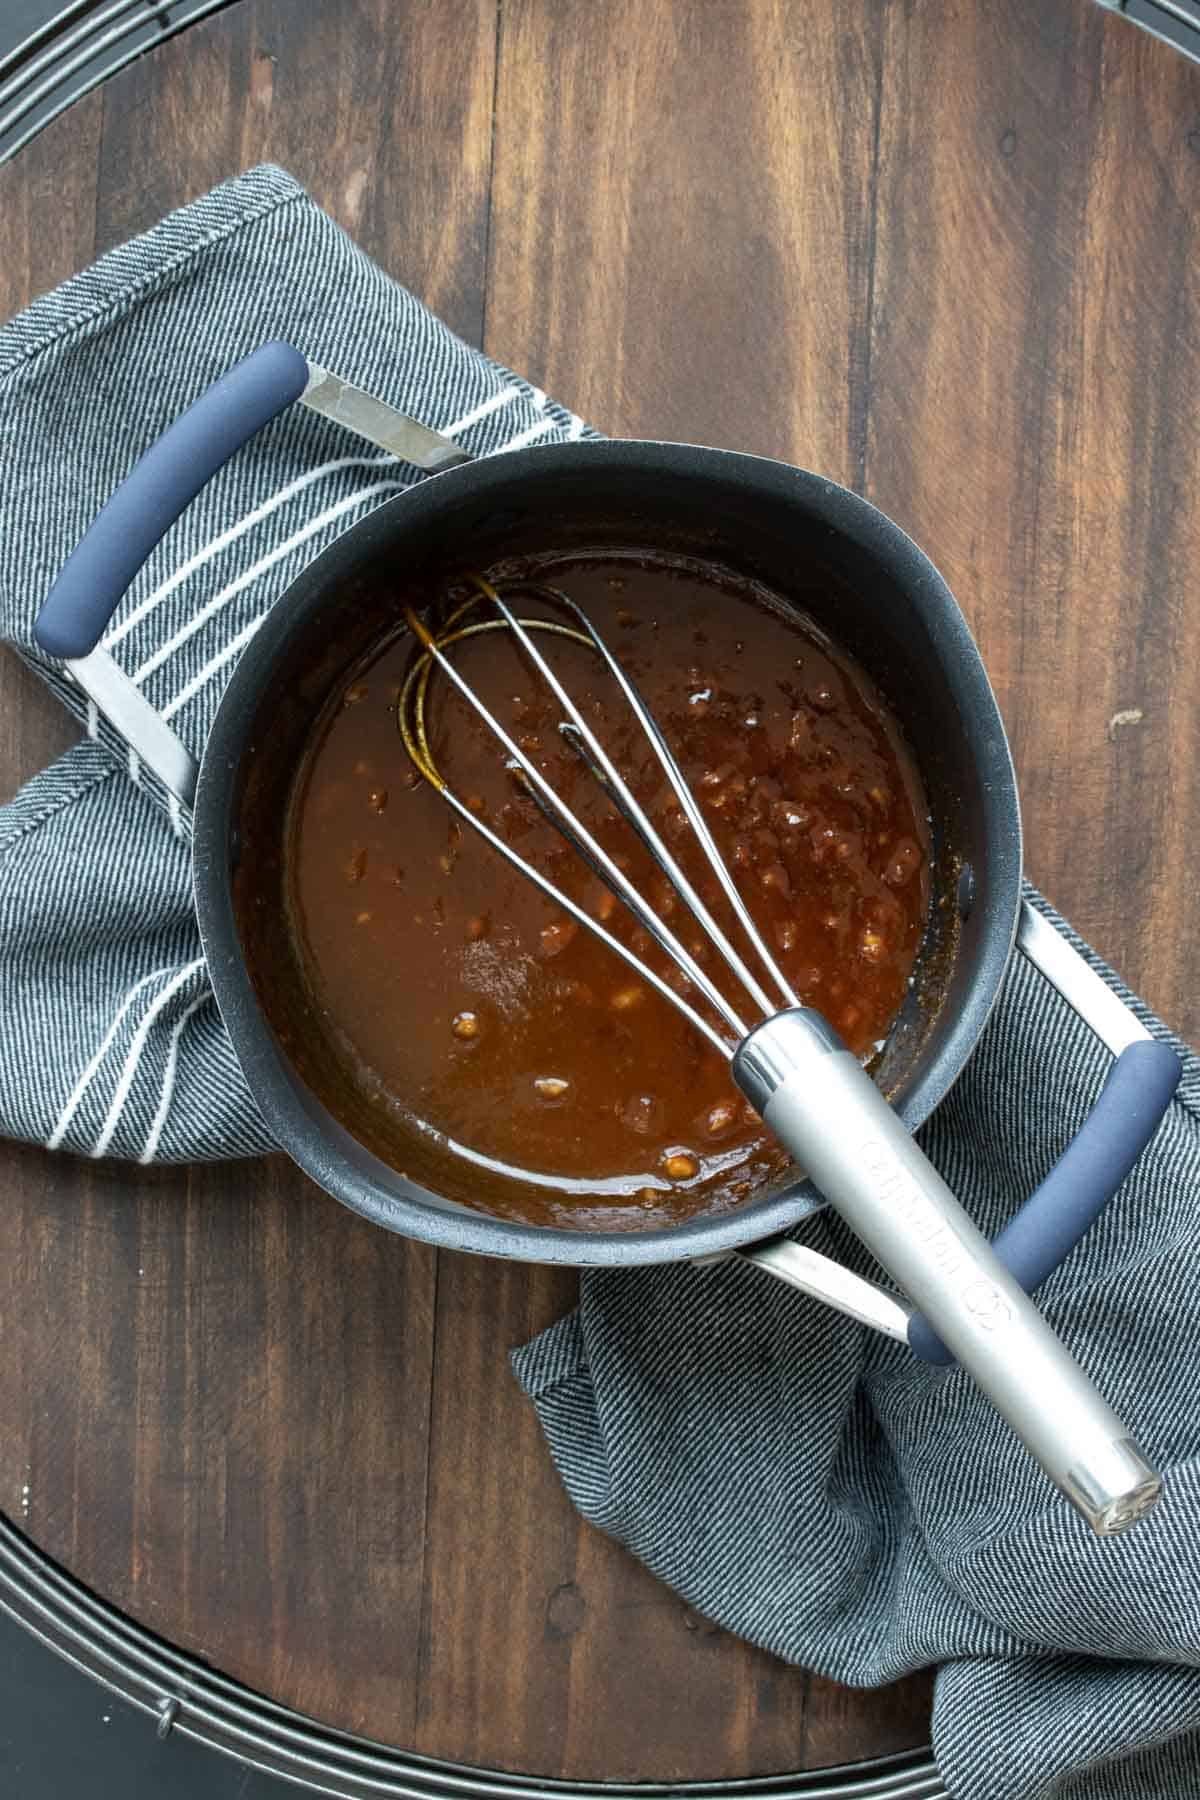 Whisk mixing brown sauce in a pot